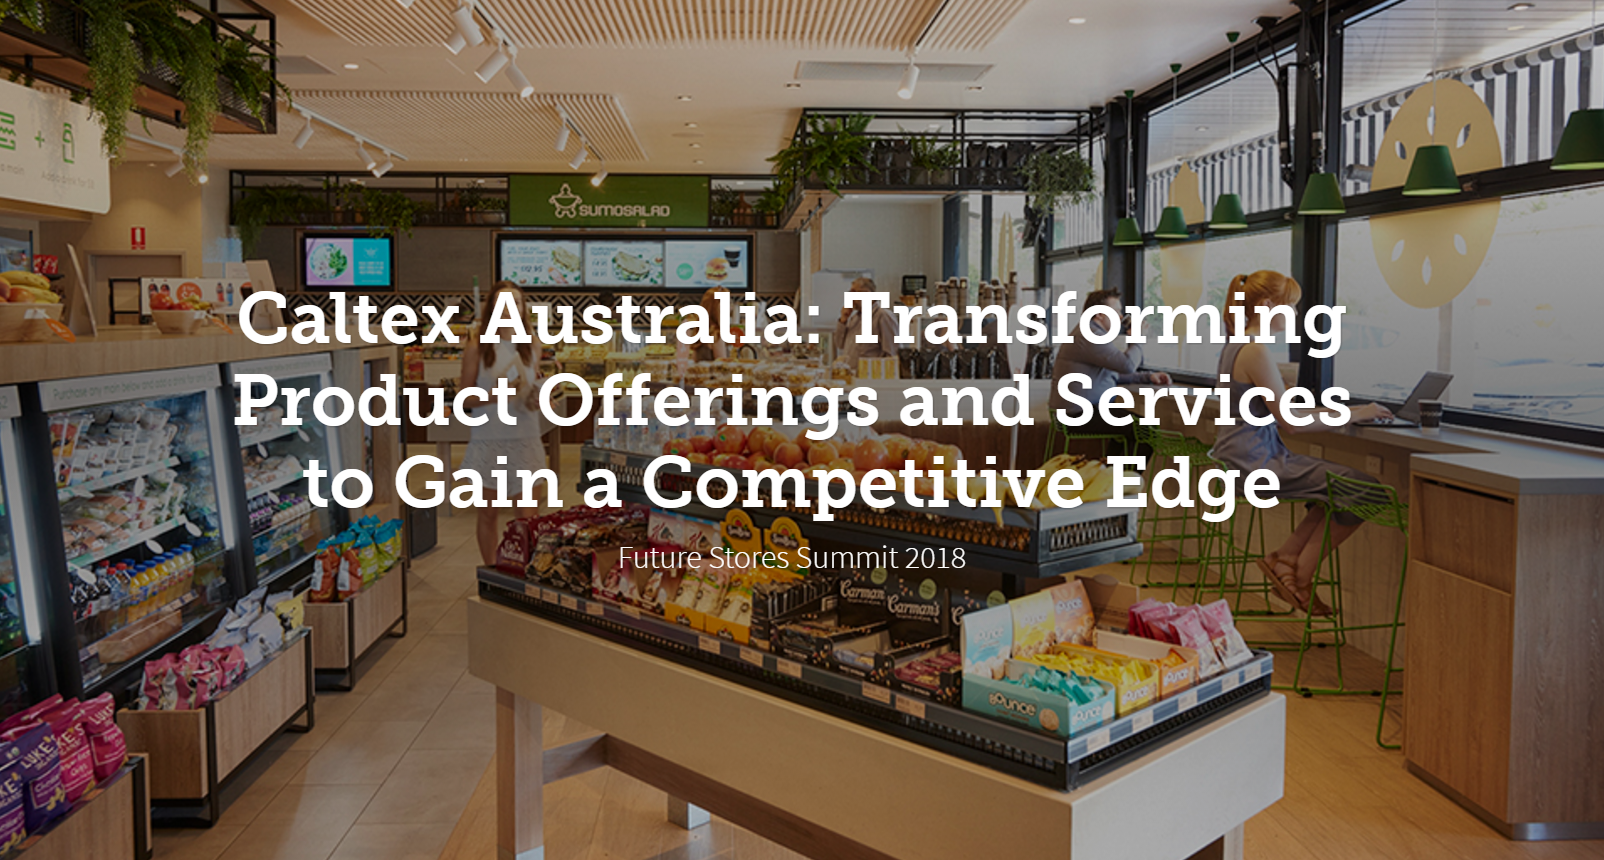 Caltex Australia: Transforming Product Offerings and Services to Gain a Competitive Edge